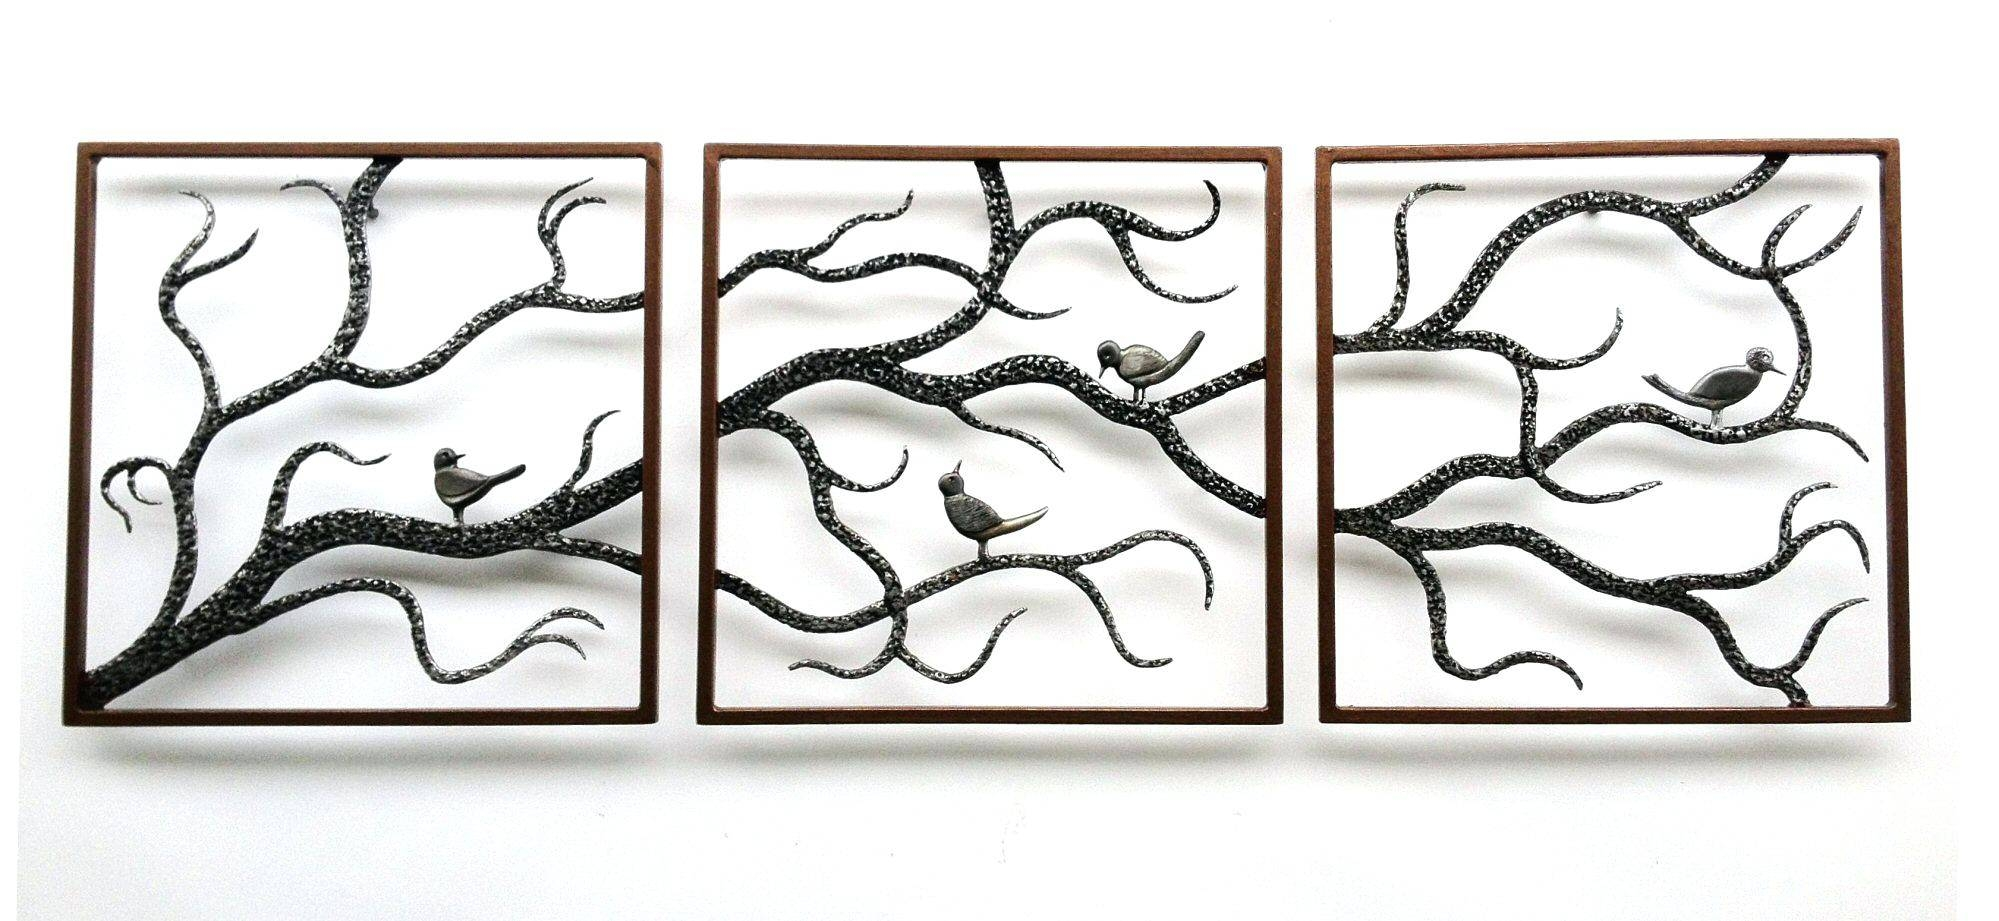 Wall Decor : Stupendous I Also Have A Fair Amount Of Wrought Iron For Most Up To Date Wrought Iron Tree Wall Art (View 16 of 20)